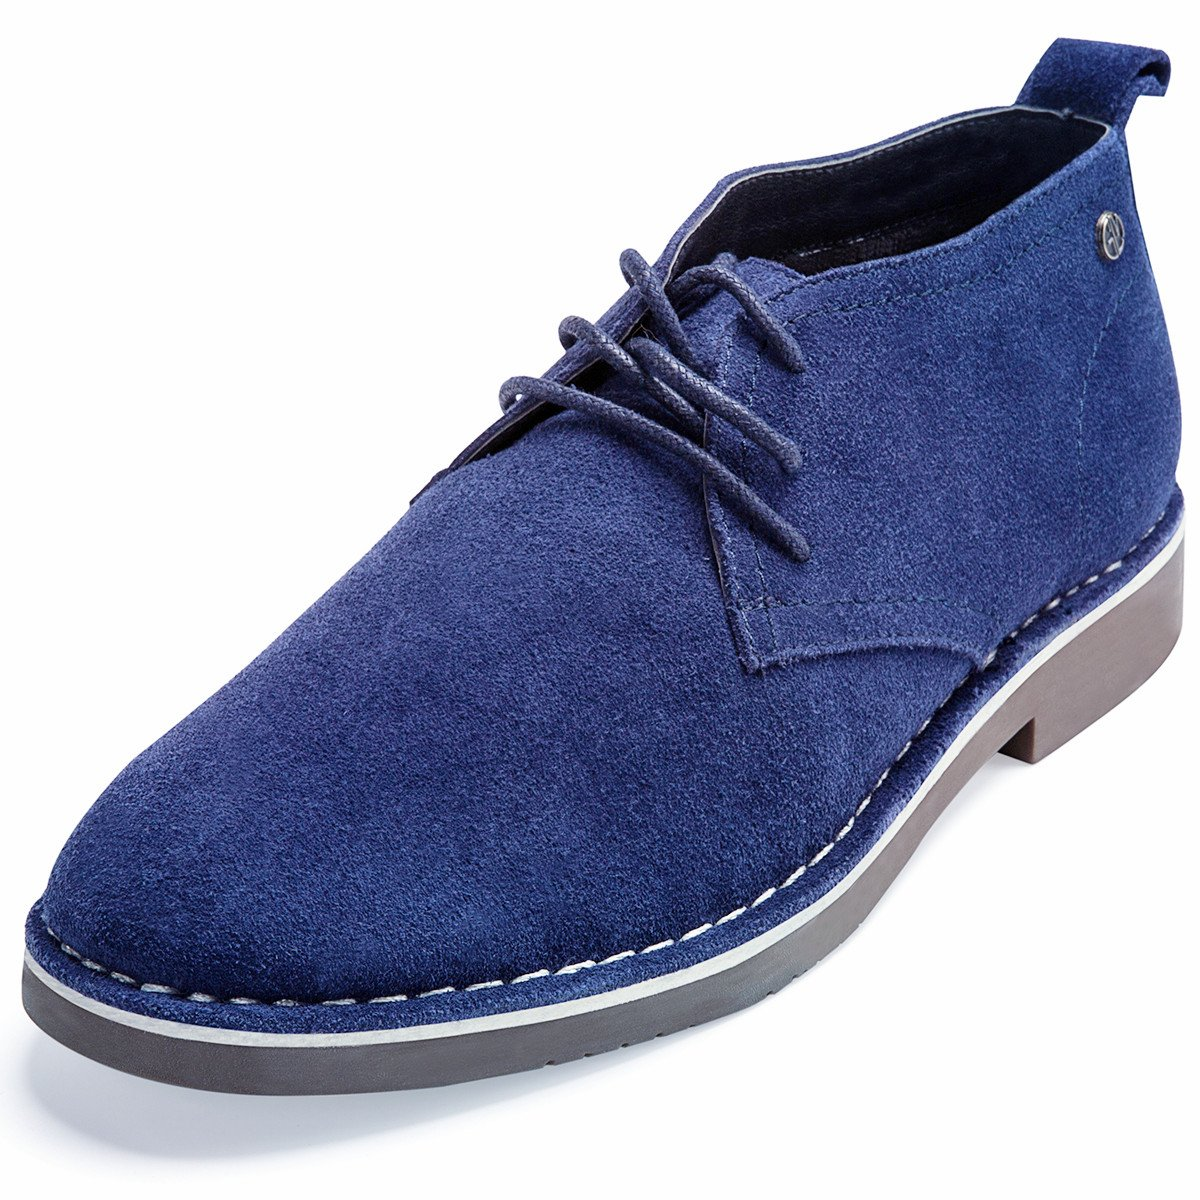 GM GOLAIMAN Genuine Suede Chukka Boots for Men Lace-up Desert Ankle Booties Stylish Leather Shoes Navy 13 D (M) US